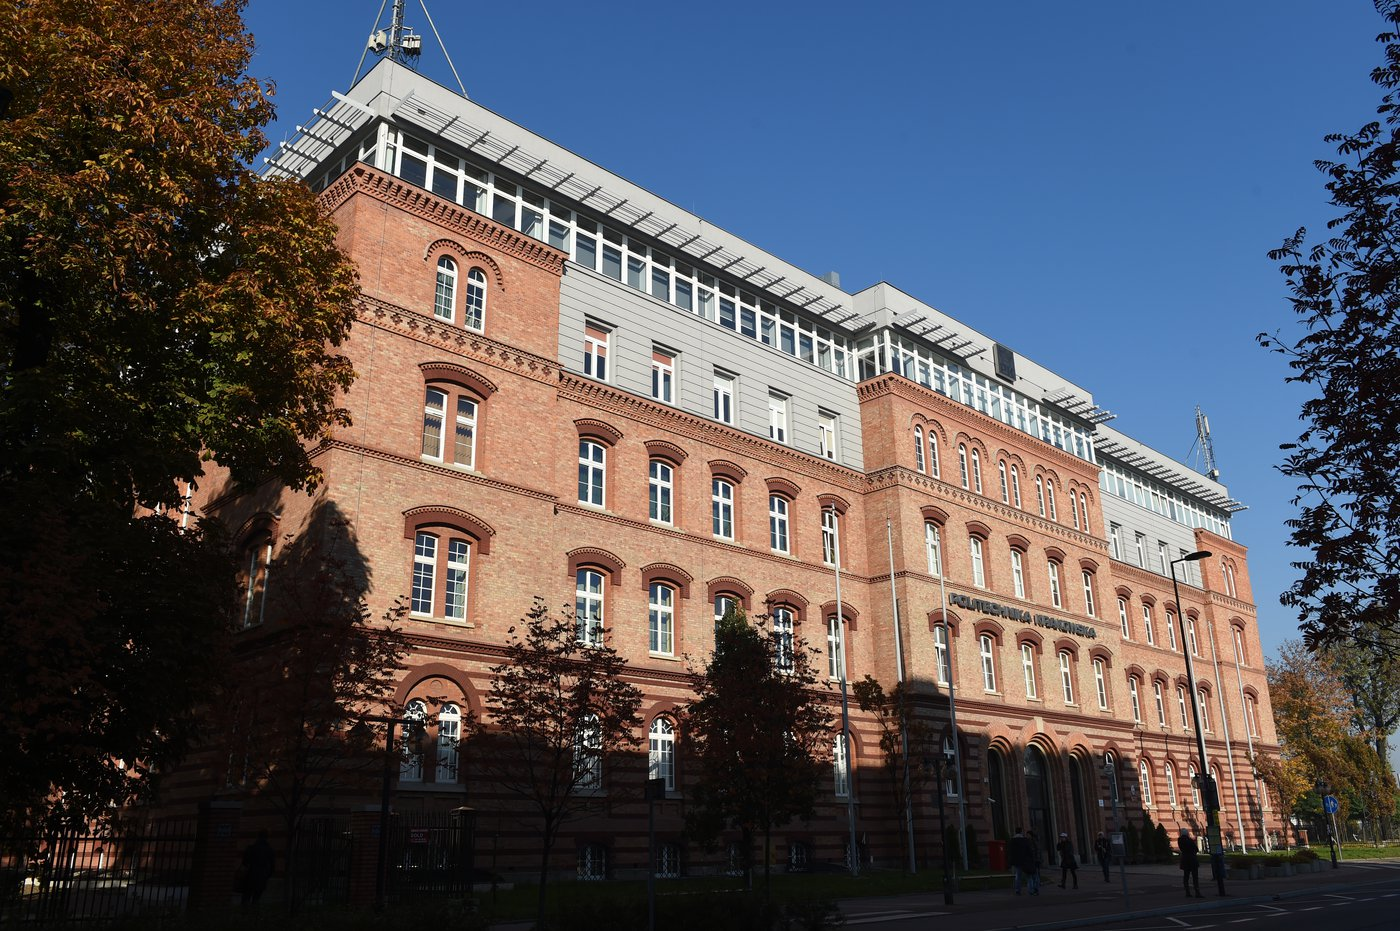 Main building of the Cracow University of Technology